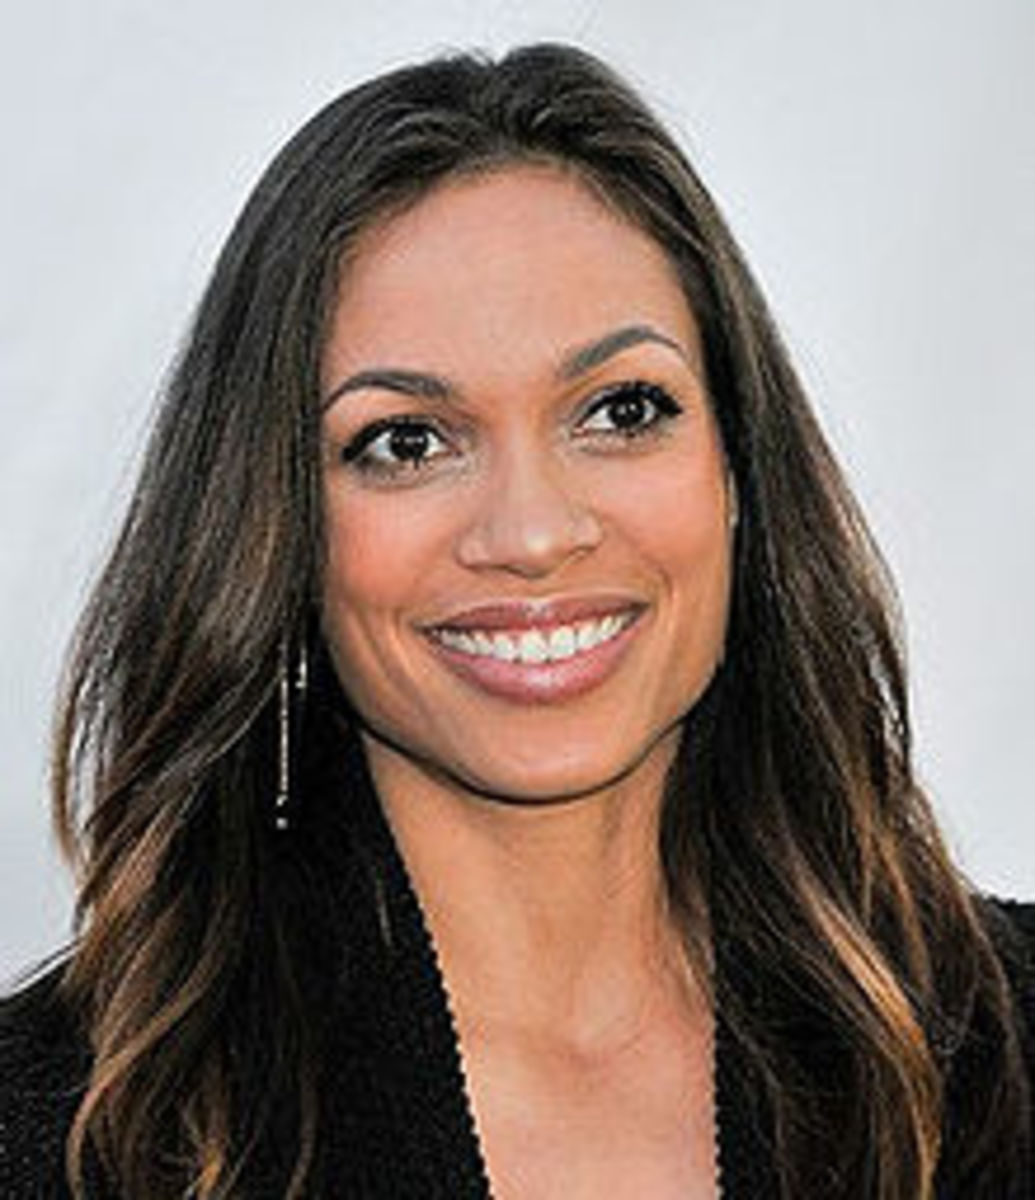 Hollywood women with square jaws: Rosario Dawson